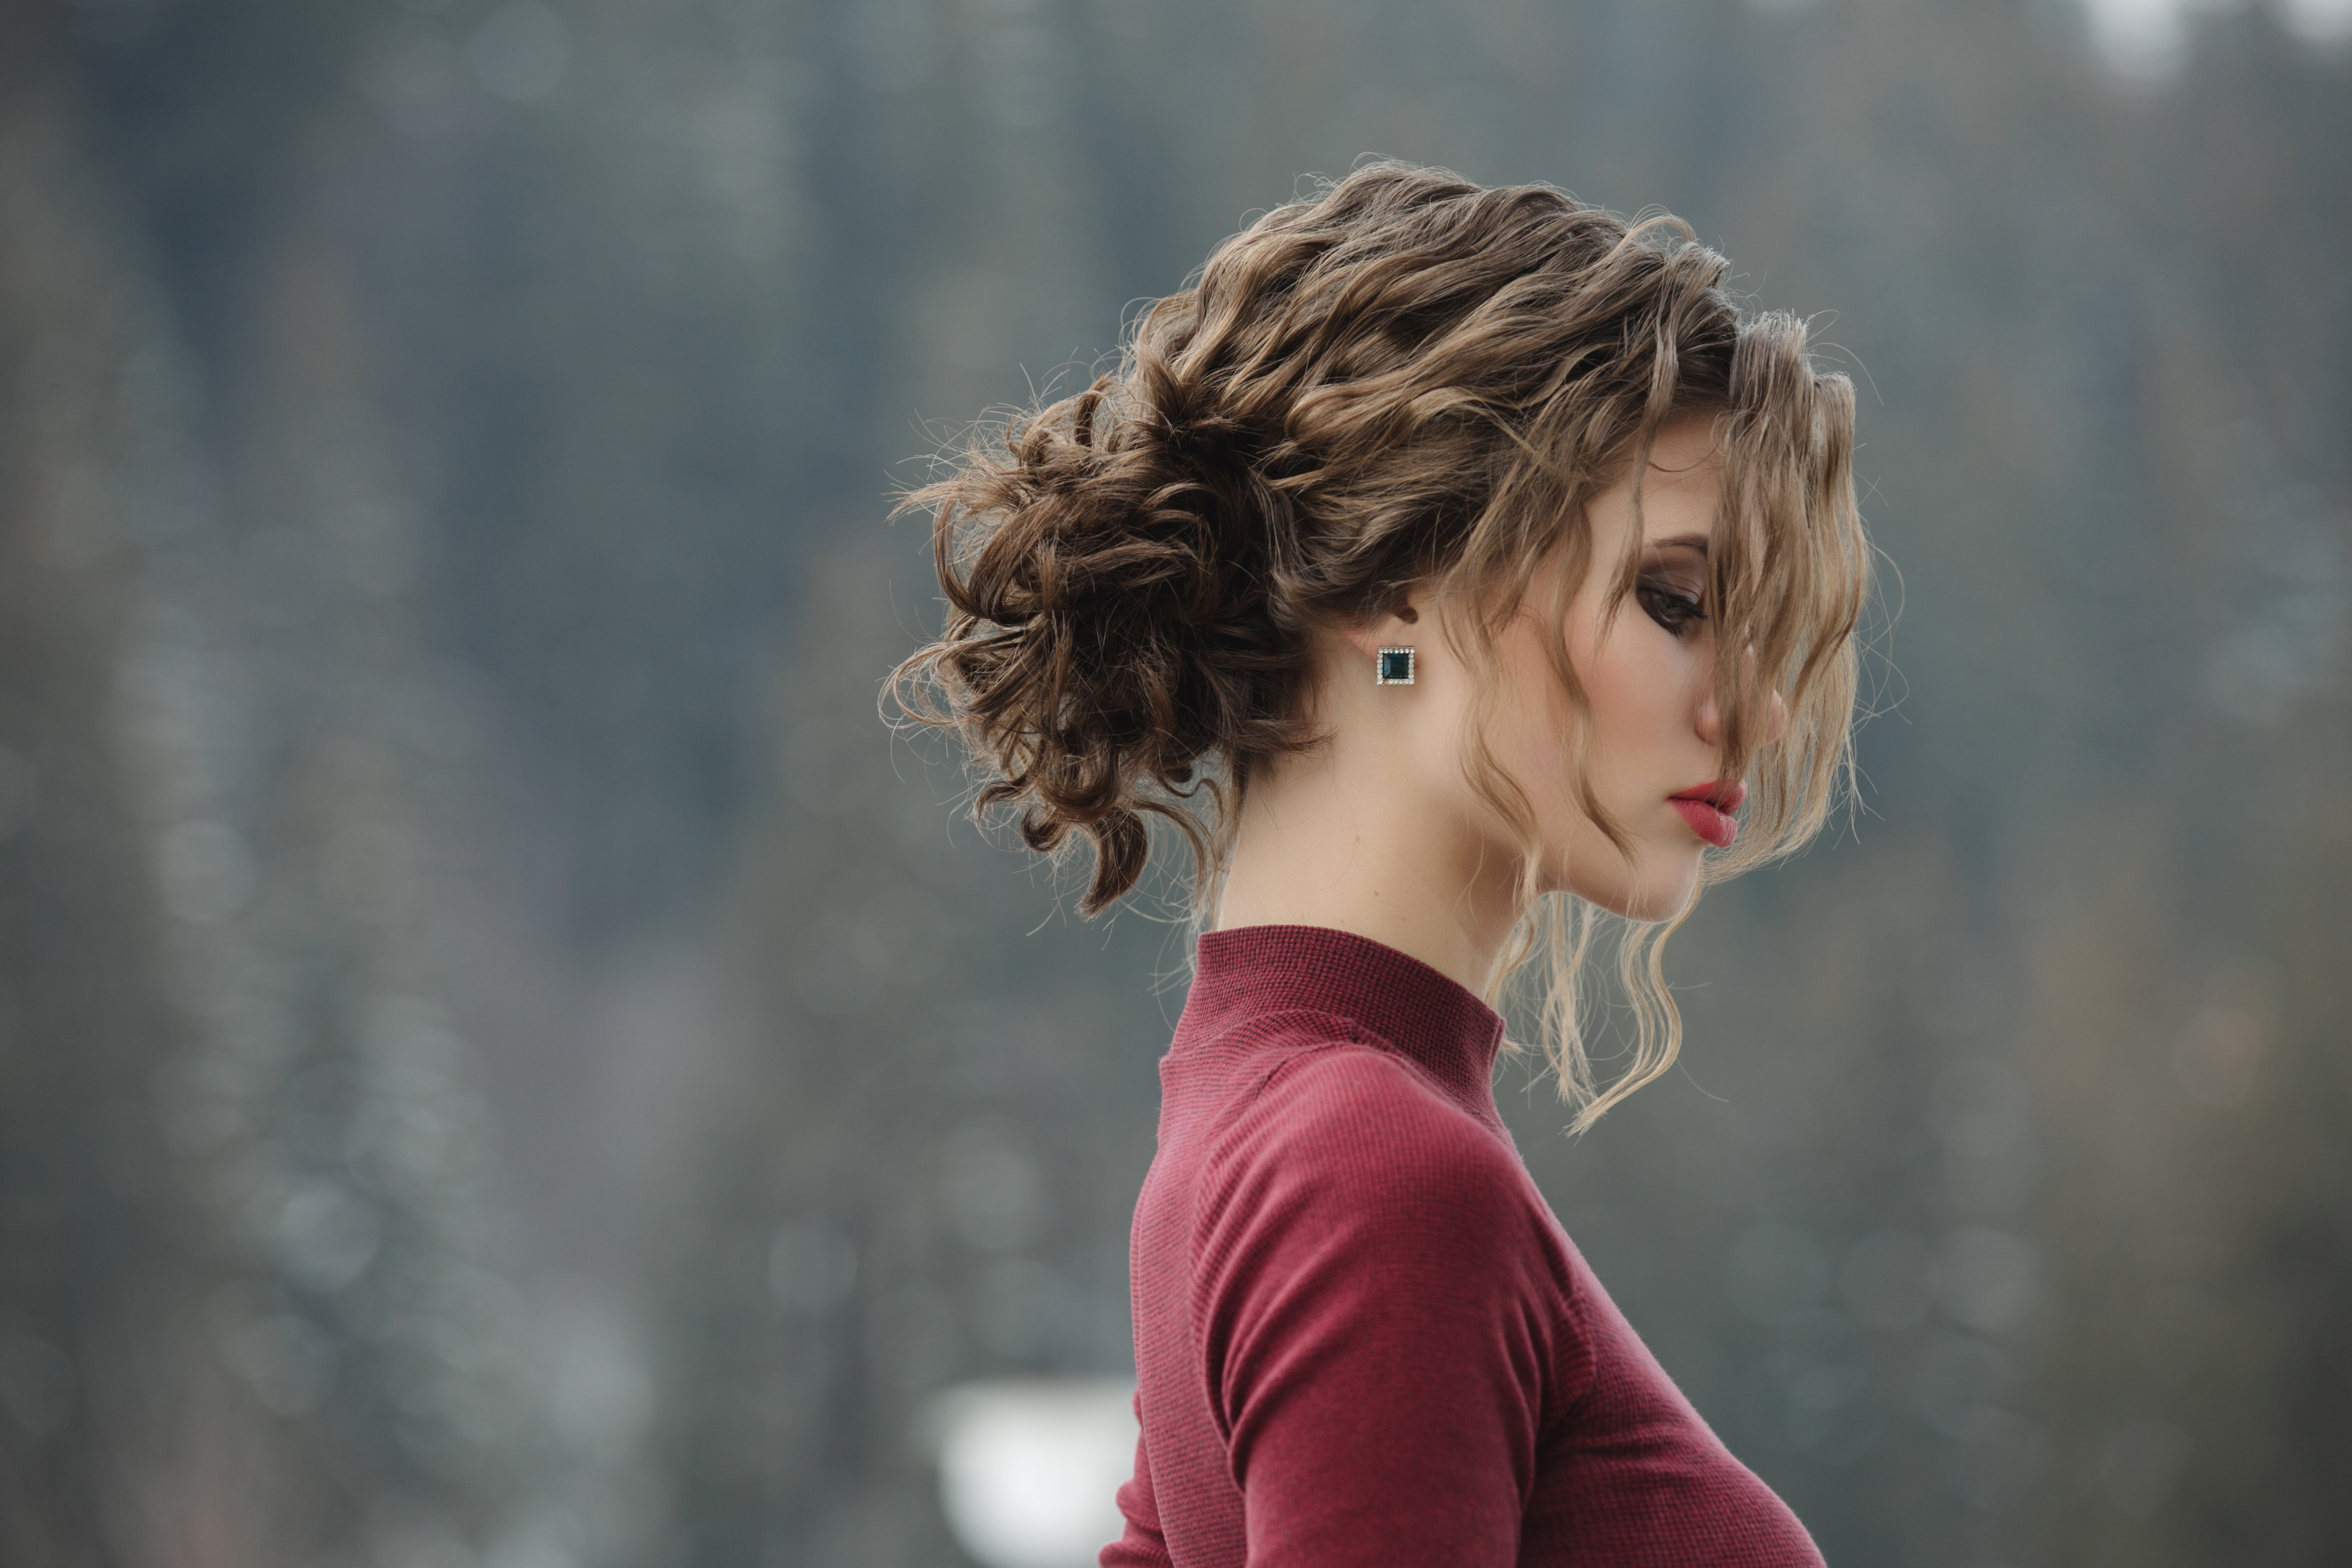 Woman with curly hairstyle at winter